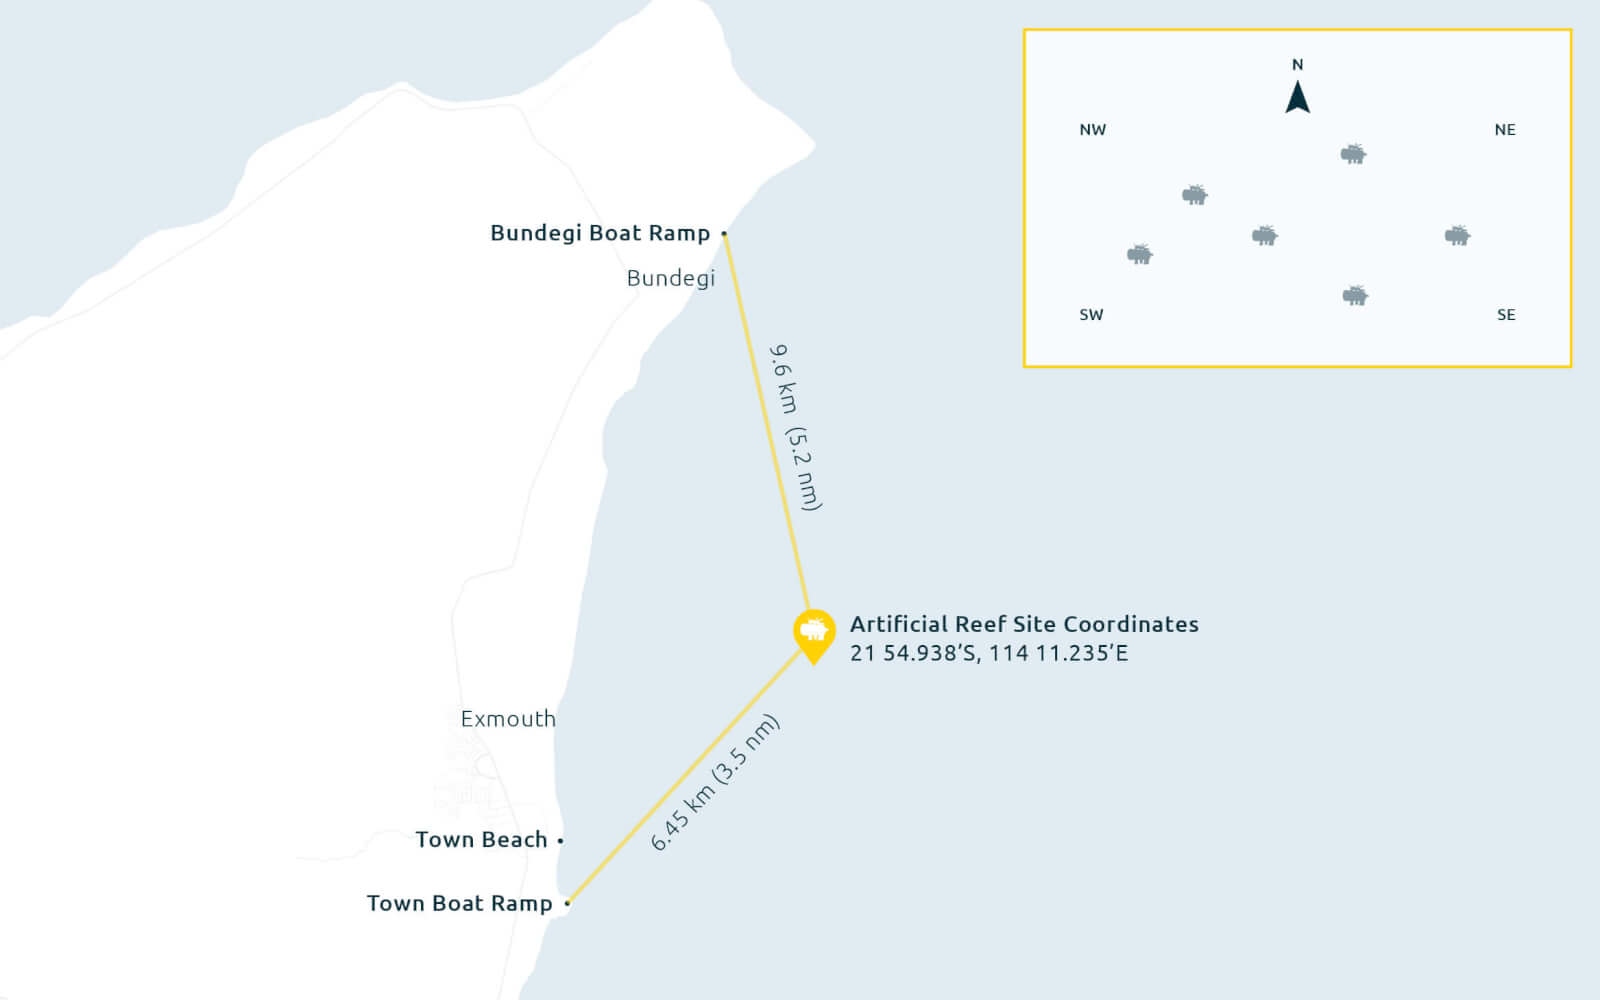 Exmouth artificial reef location